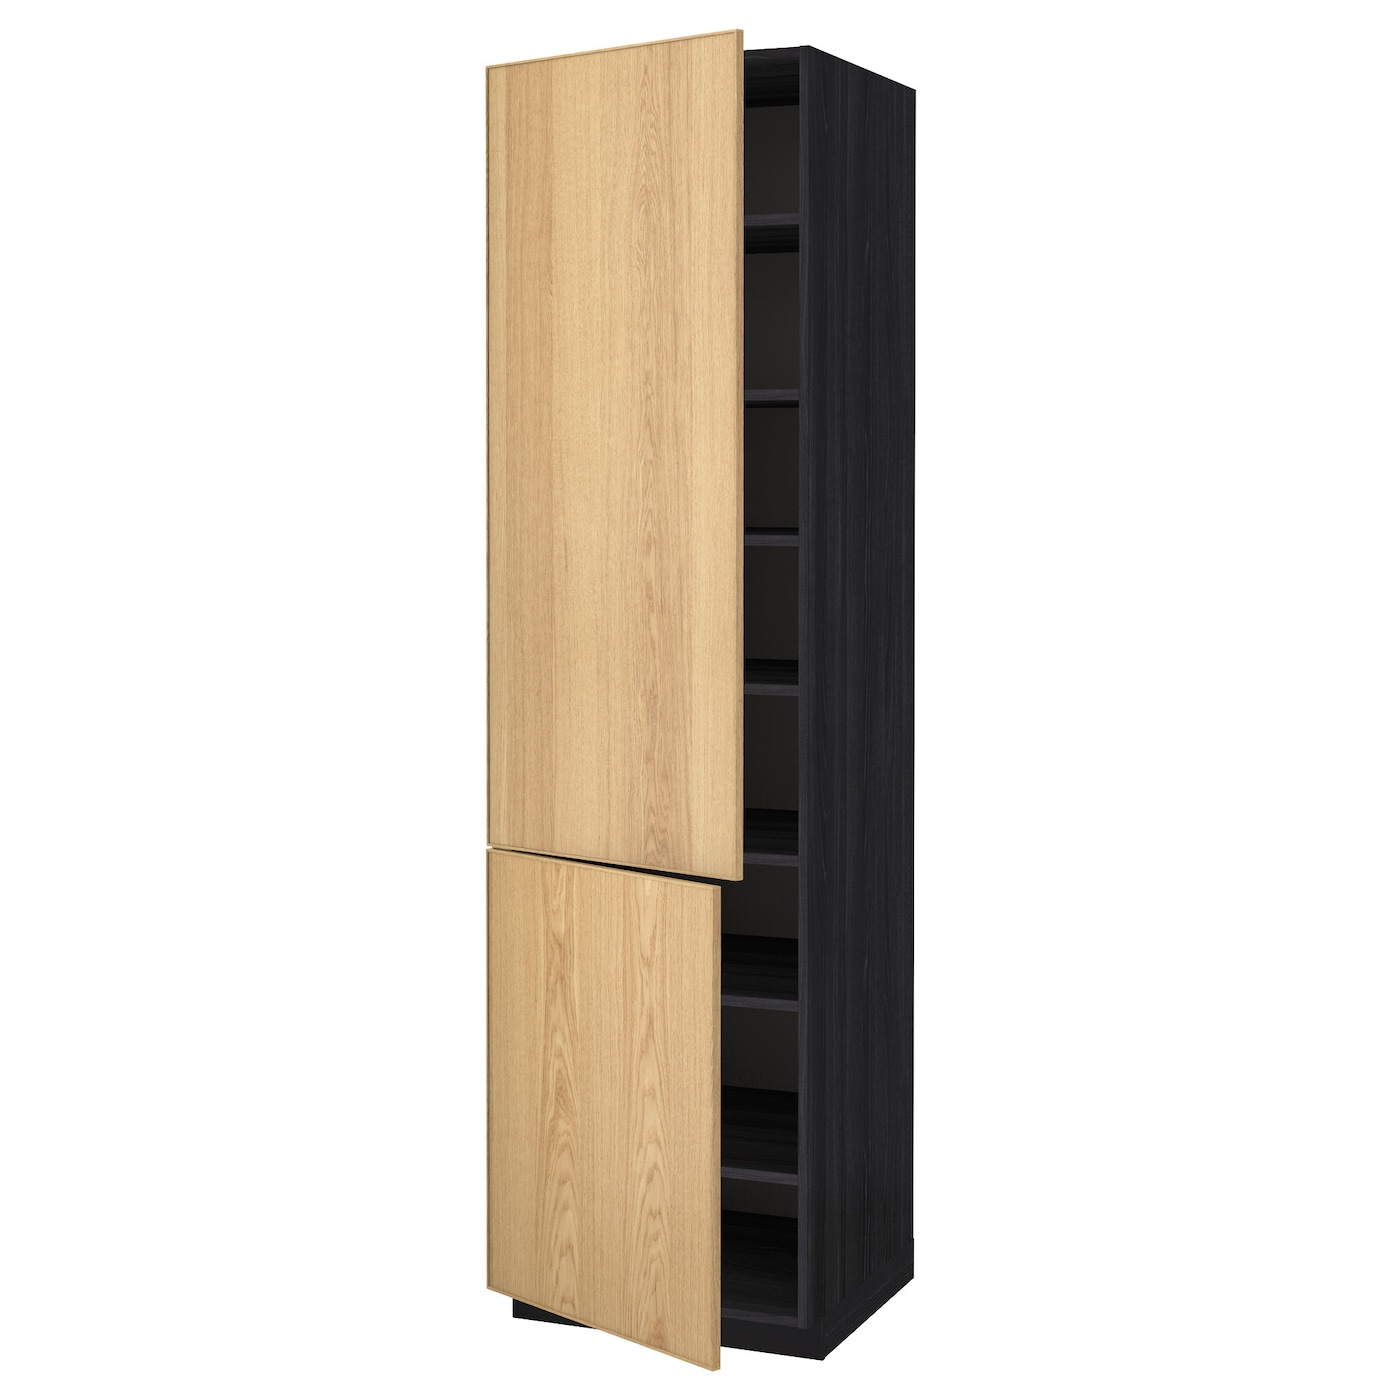 metod high cabinet with shelves 2 doors black ekestad oak. Black Bedroom Furniture Sets. Home Design Ideas